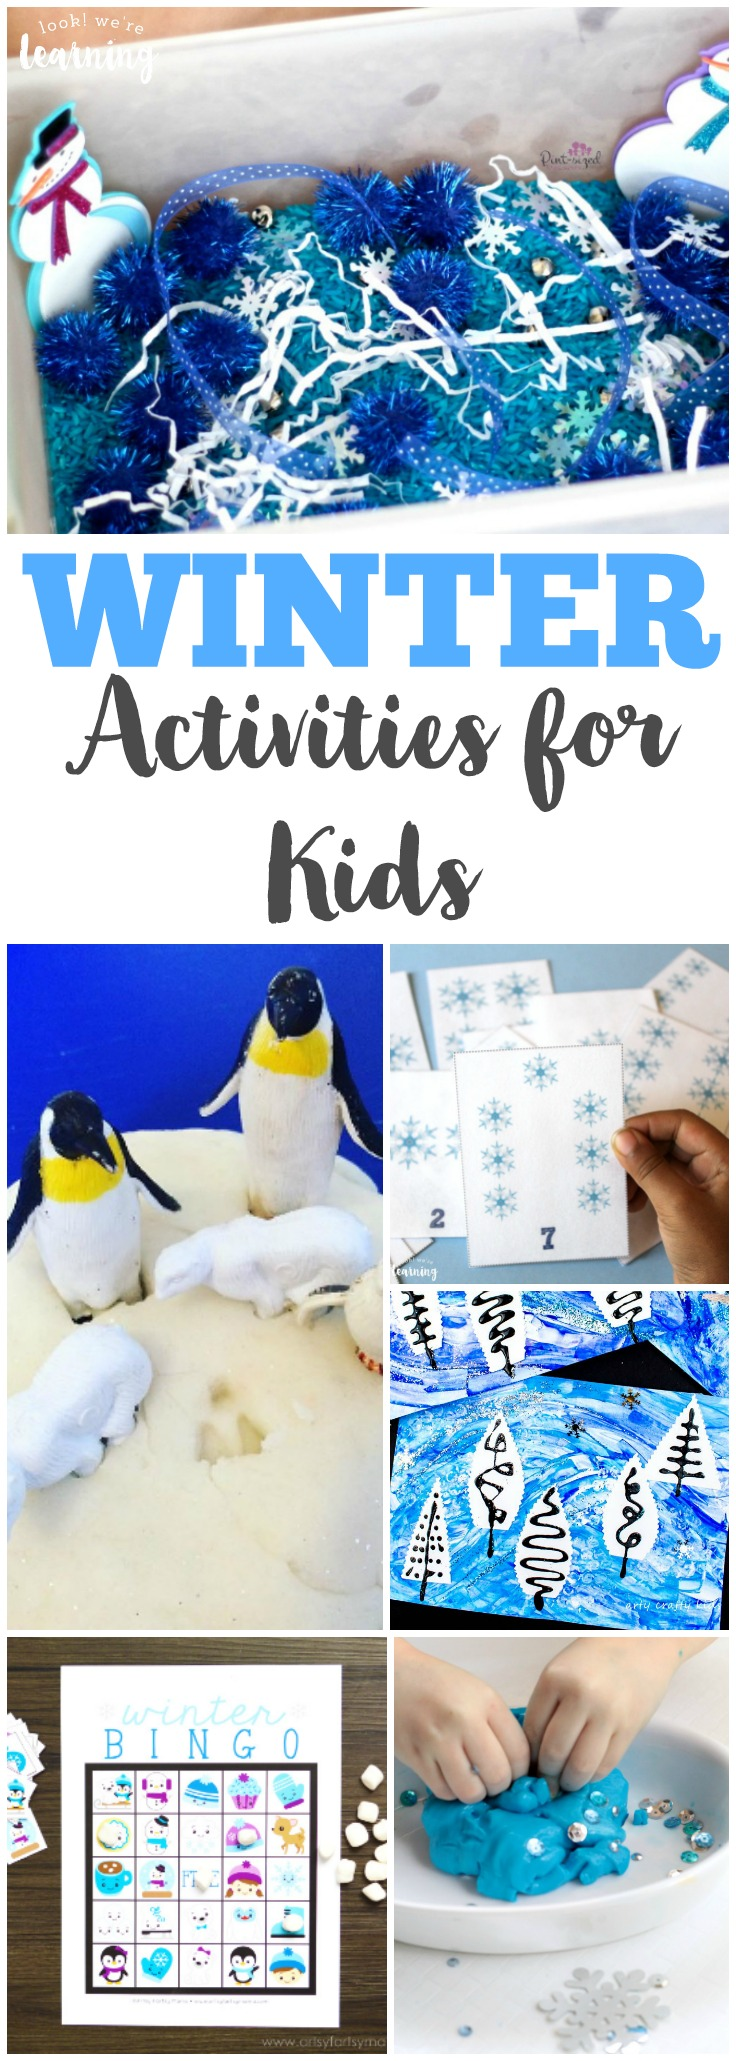 Share some of these fun, hands-on winter activities for kids this year!